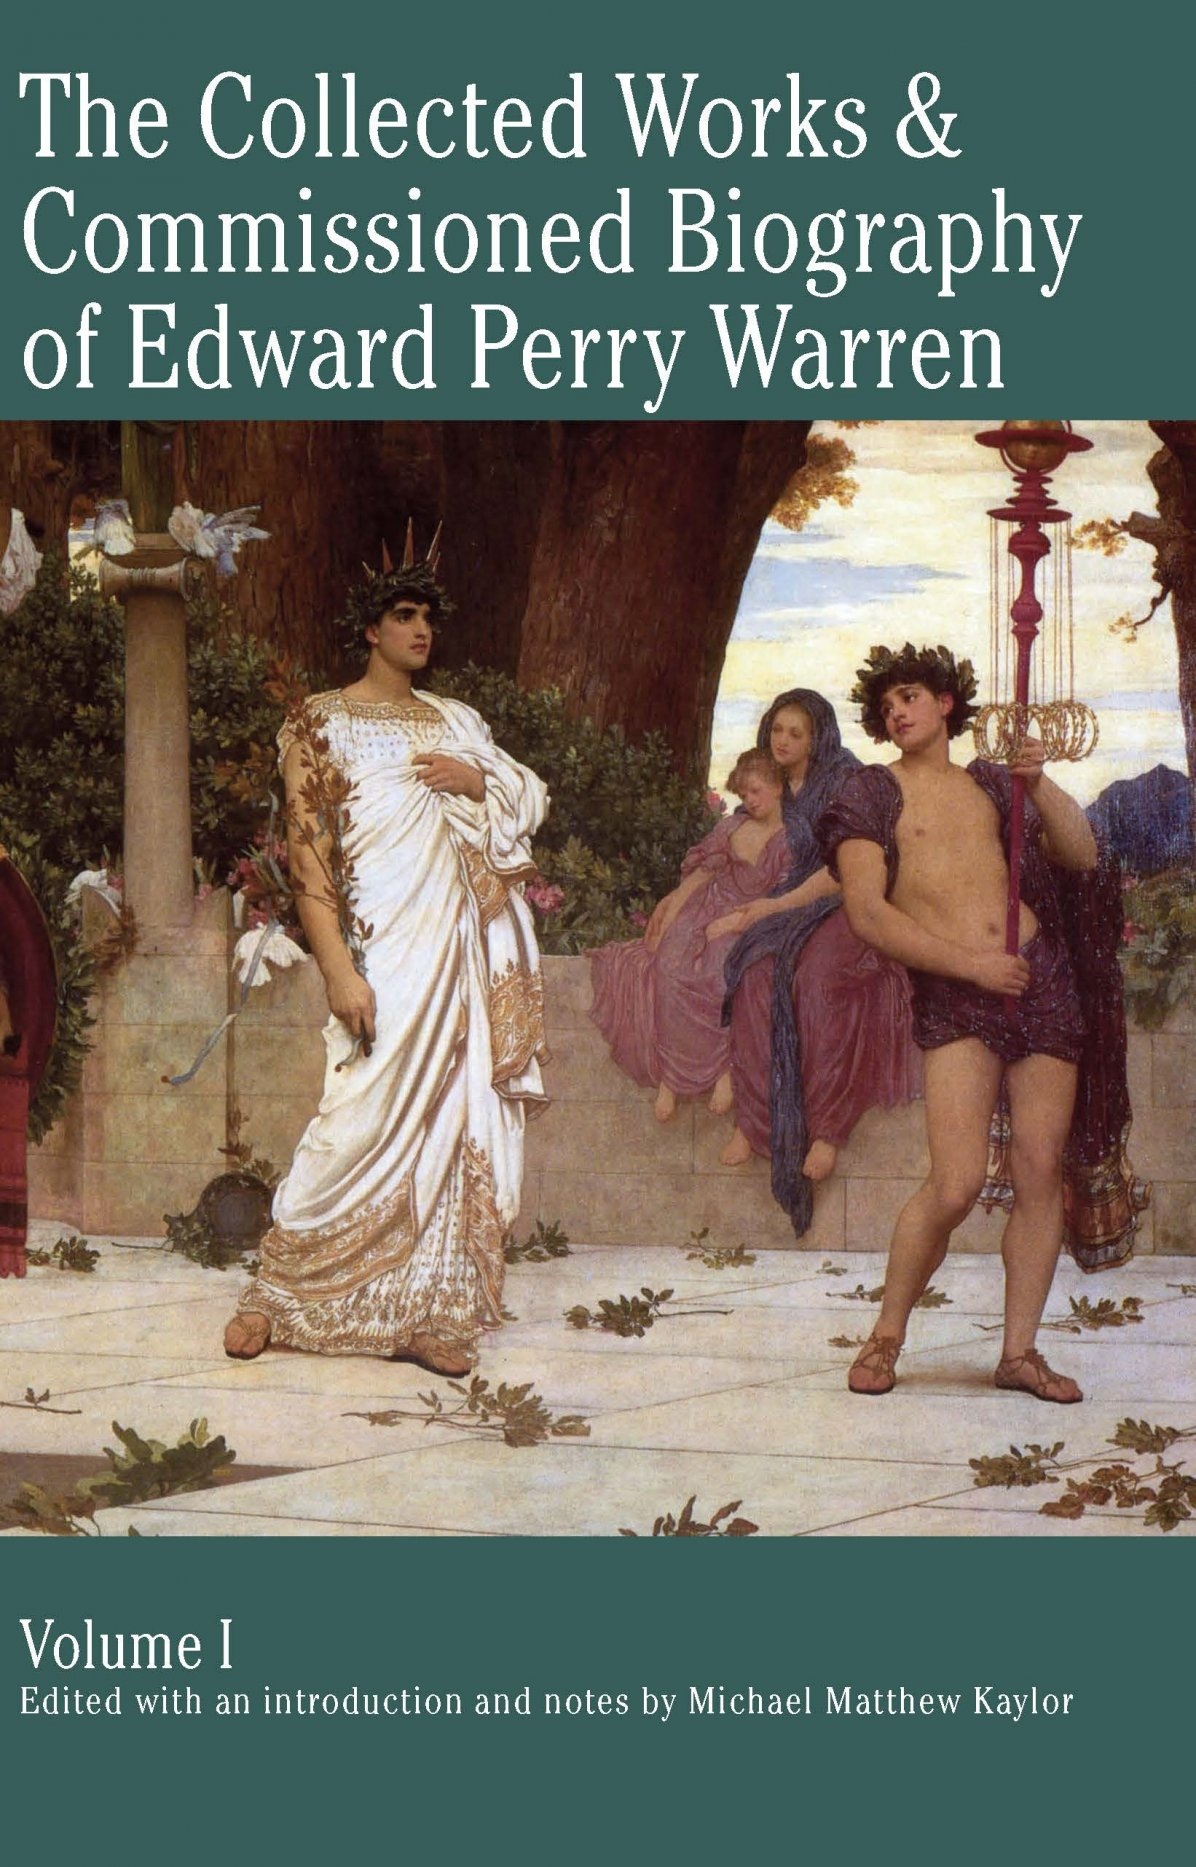 The Collected Works & Commissioned Biography of Edward Perry Warren - Michael Kaylor [E-kniha]